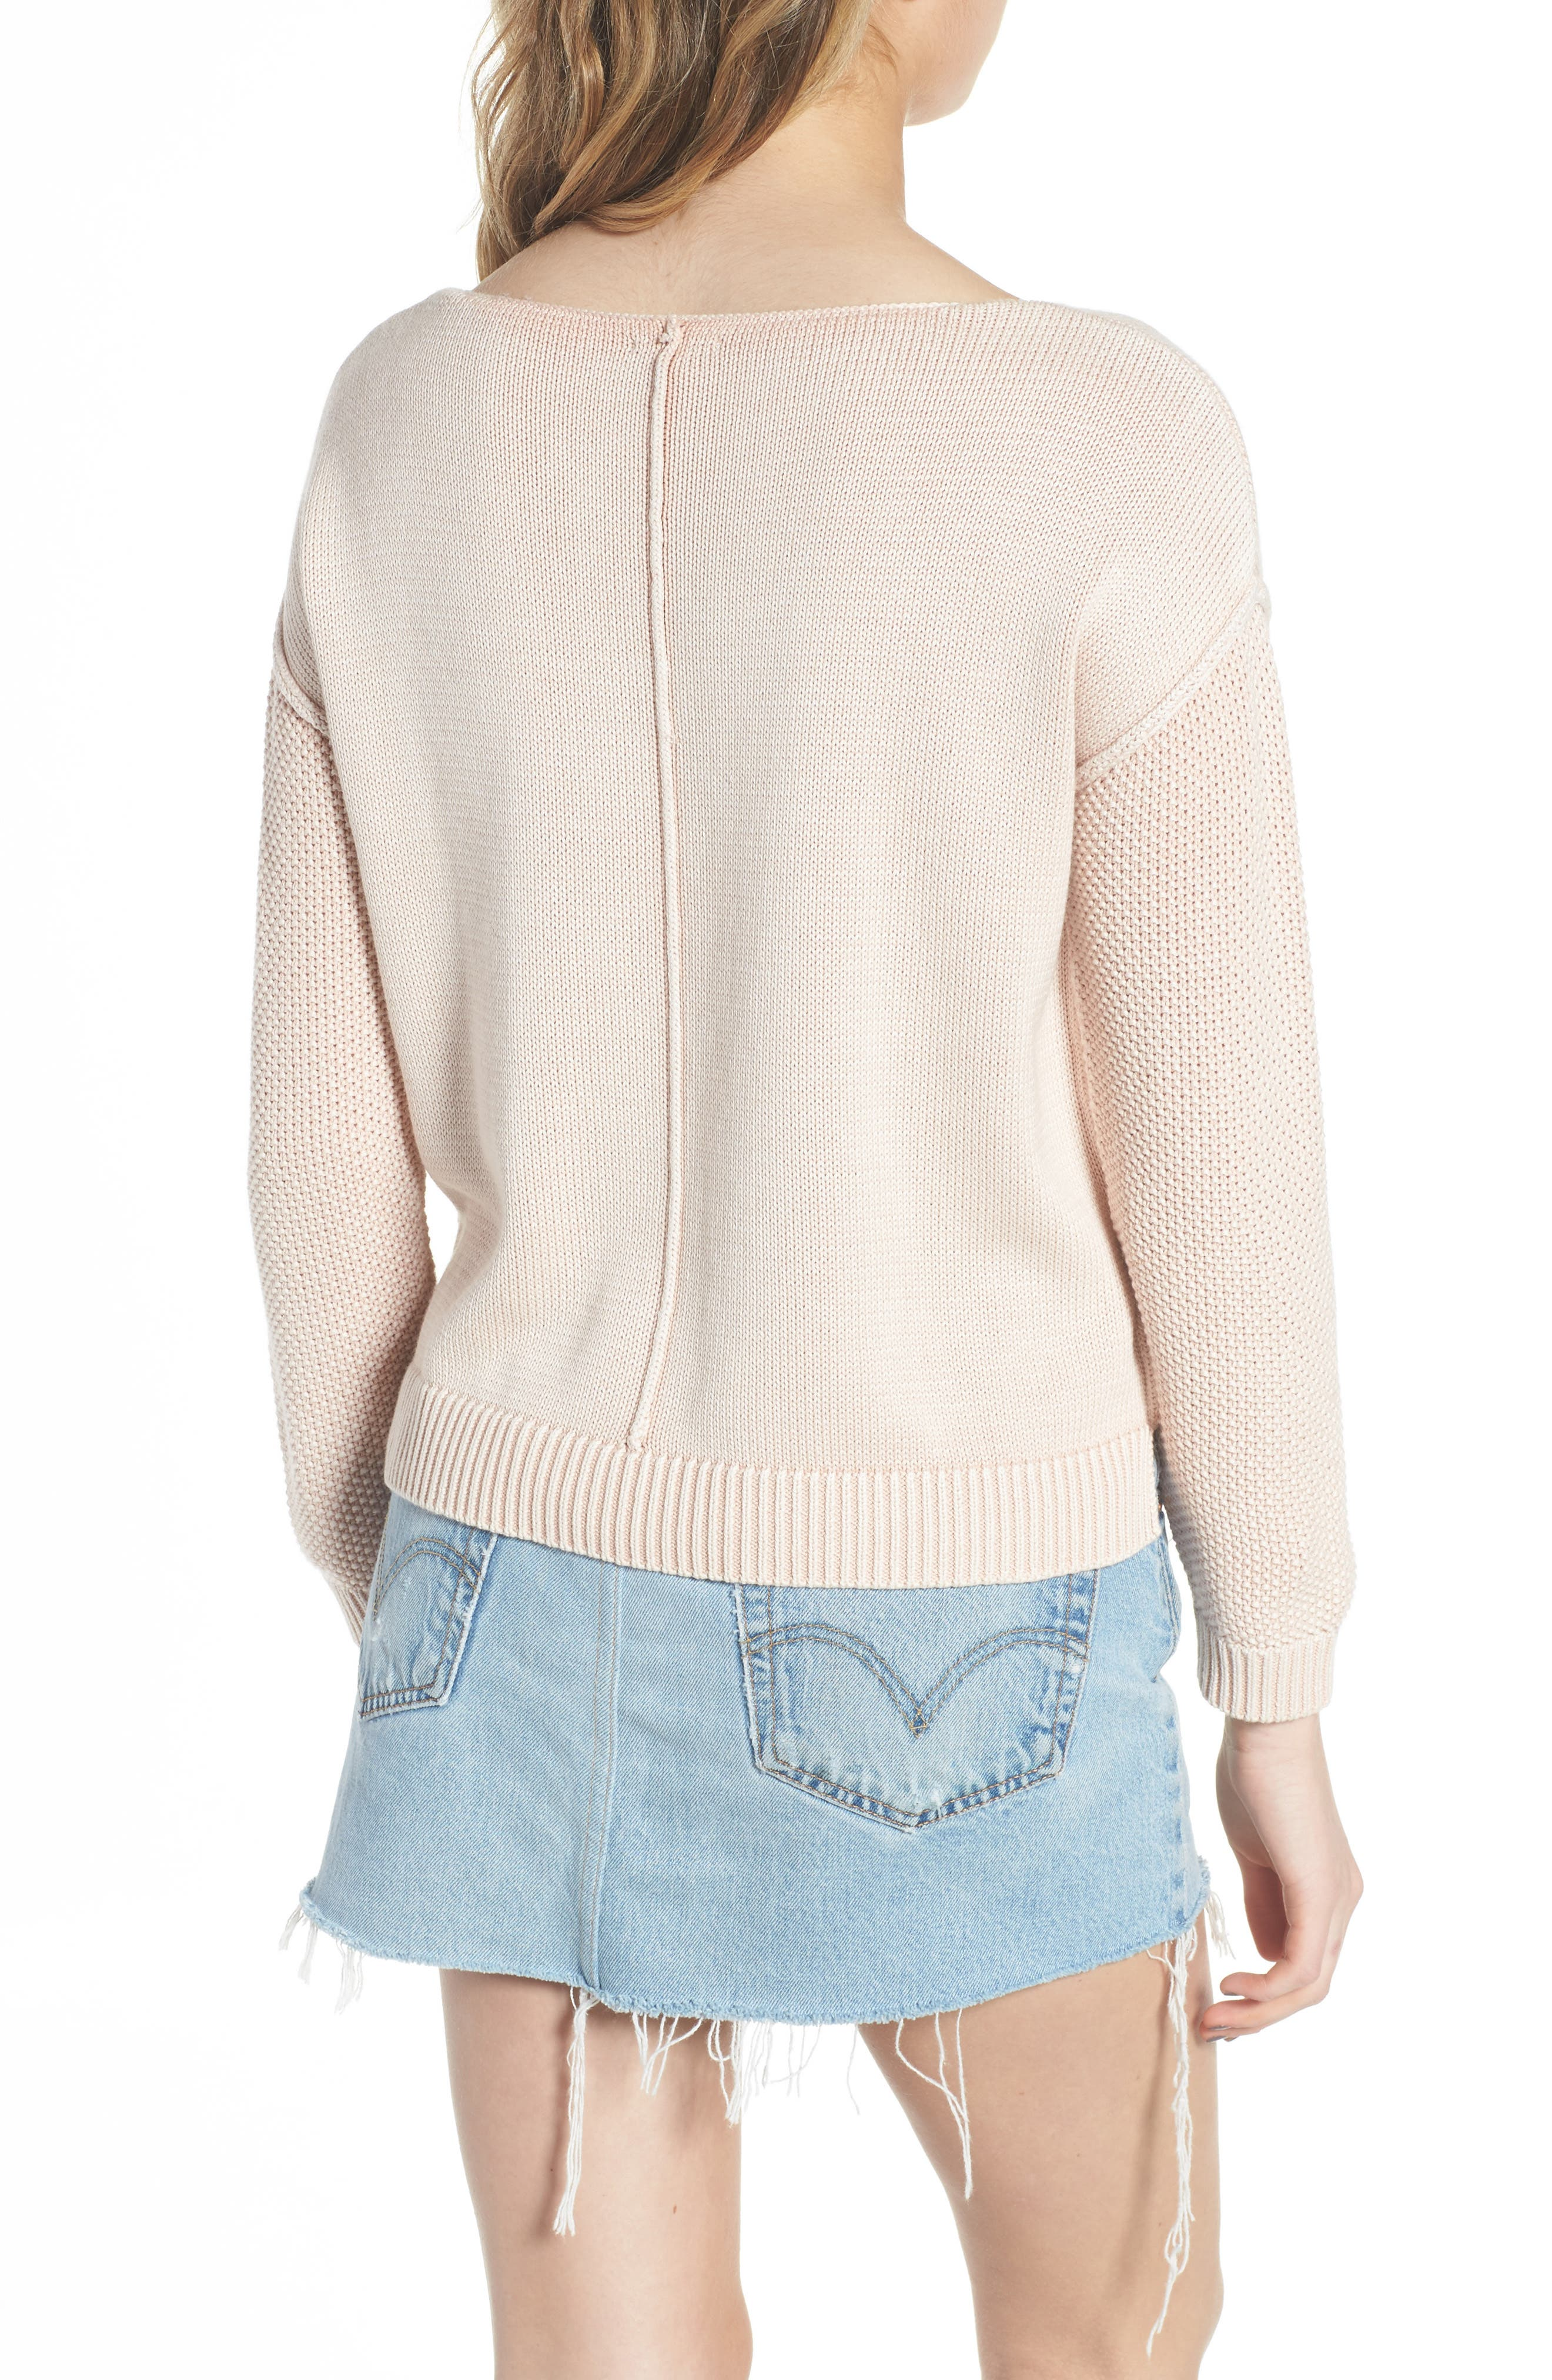 Erin Knit Sweater,                             Alternate thumbnail 2, color,                             Sand Washed Blush